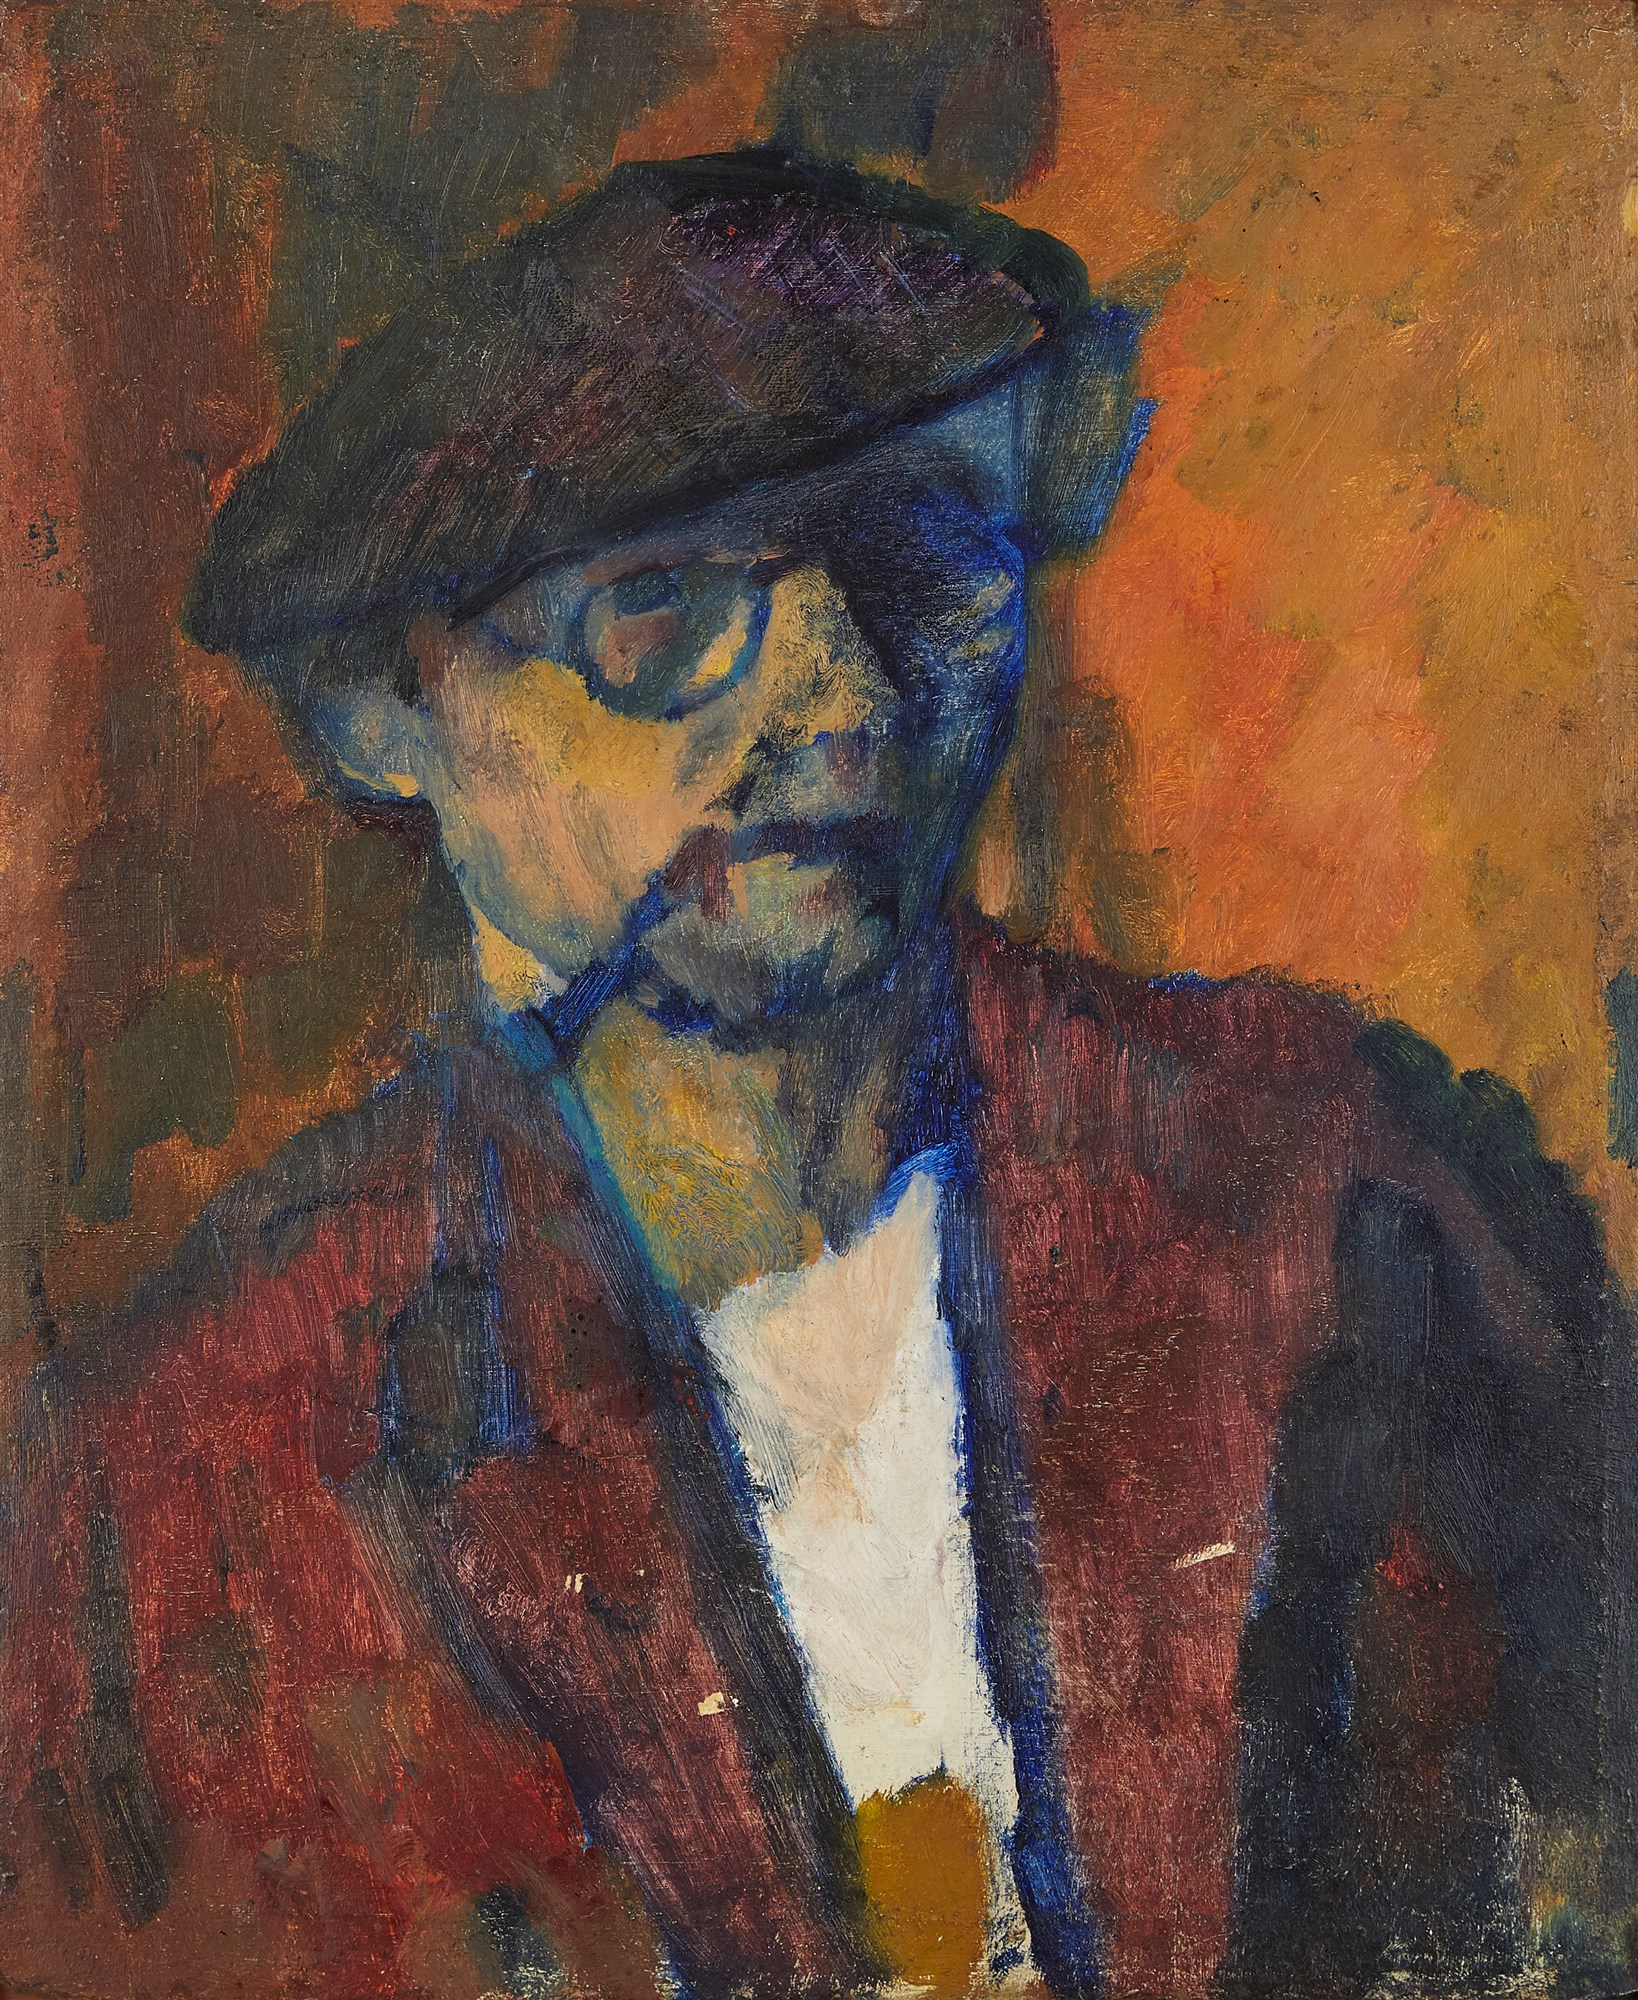 David Bomberg, British 1890-1957- Portrait of artist, 1937; oil on board